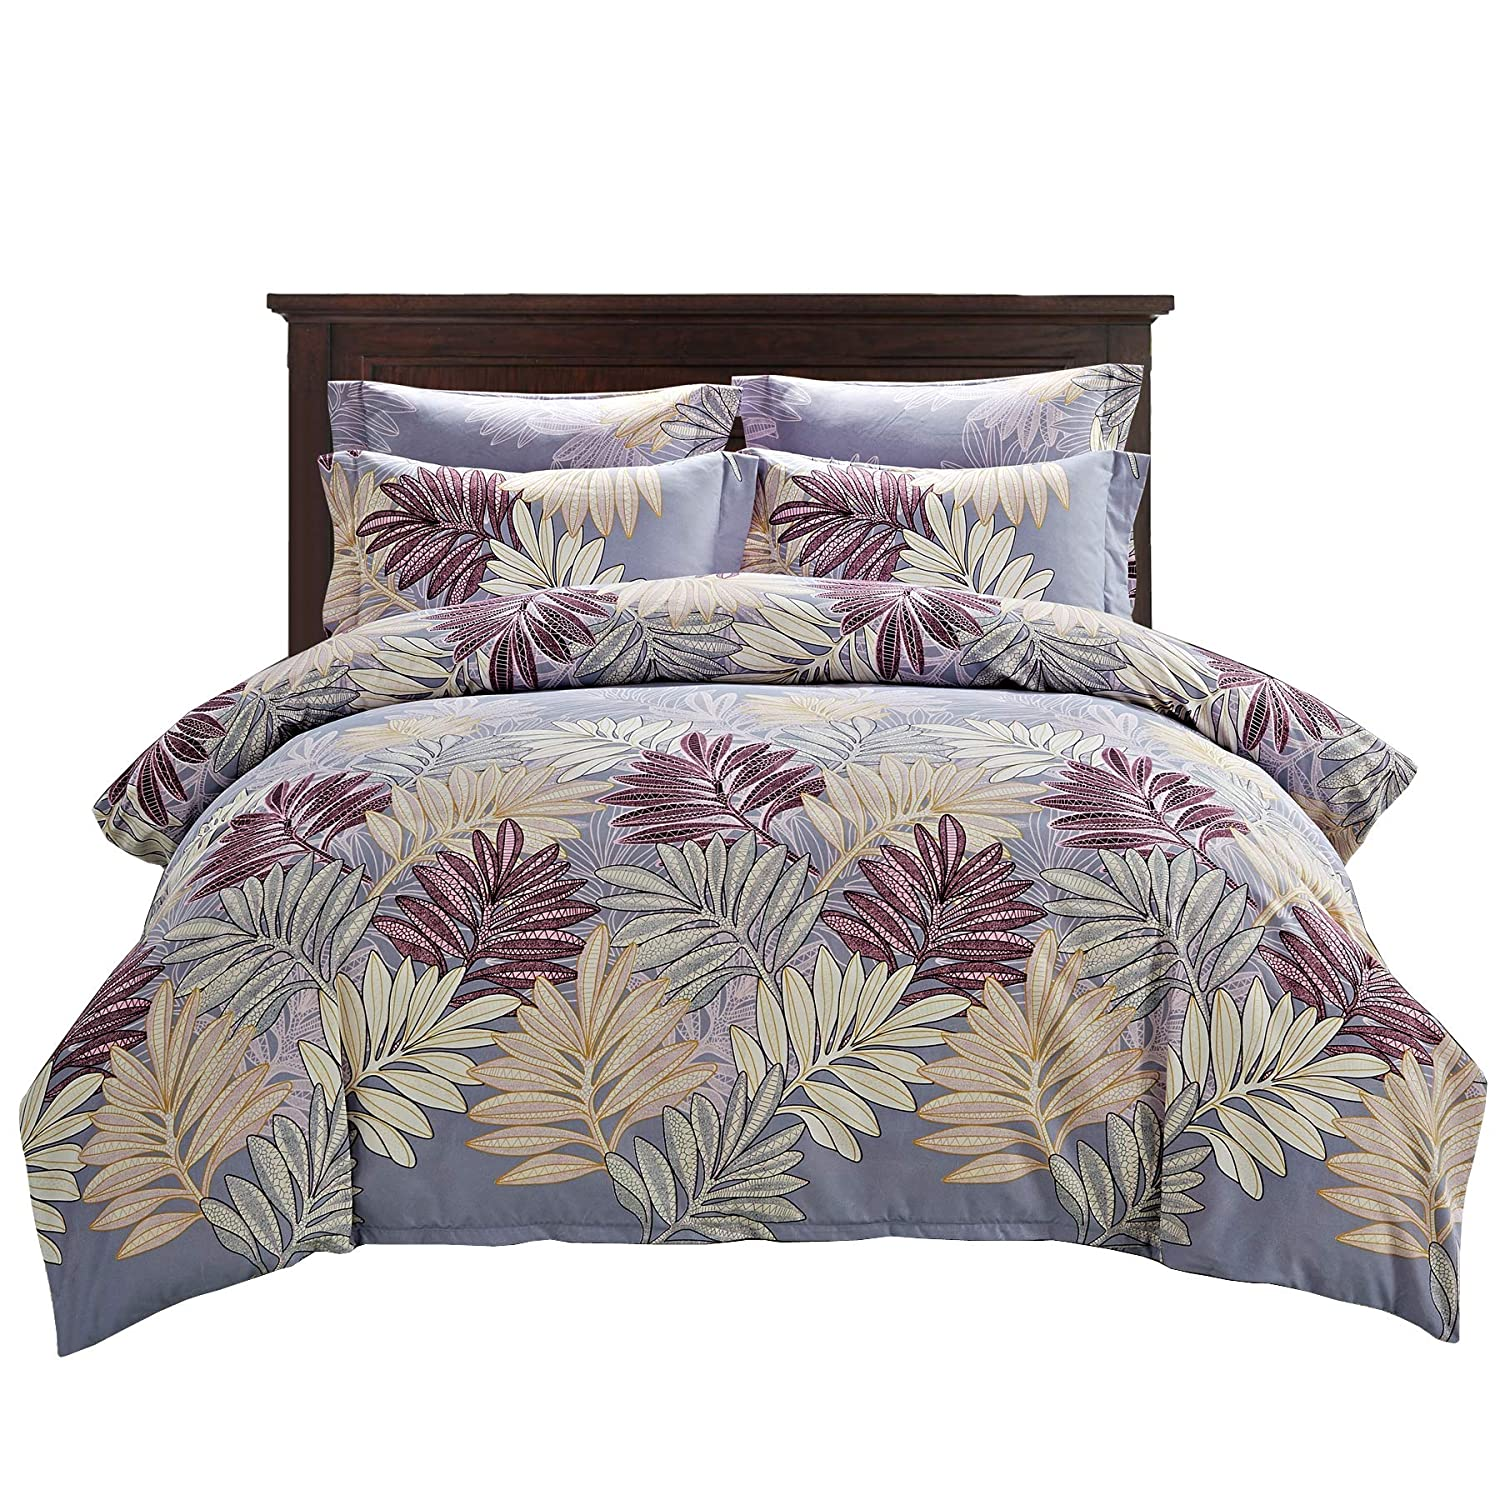 0ecae643f348 DelbouTree Queen Duvet Cover Set,Lightweight Microfiber Duvet Cover Set,Light  Purple Quilt Cover,Maple Leaf Pattern: Amazon.ca: Home & Kitchen